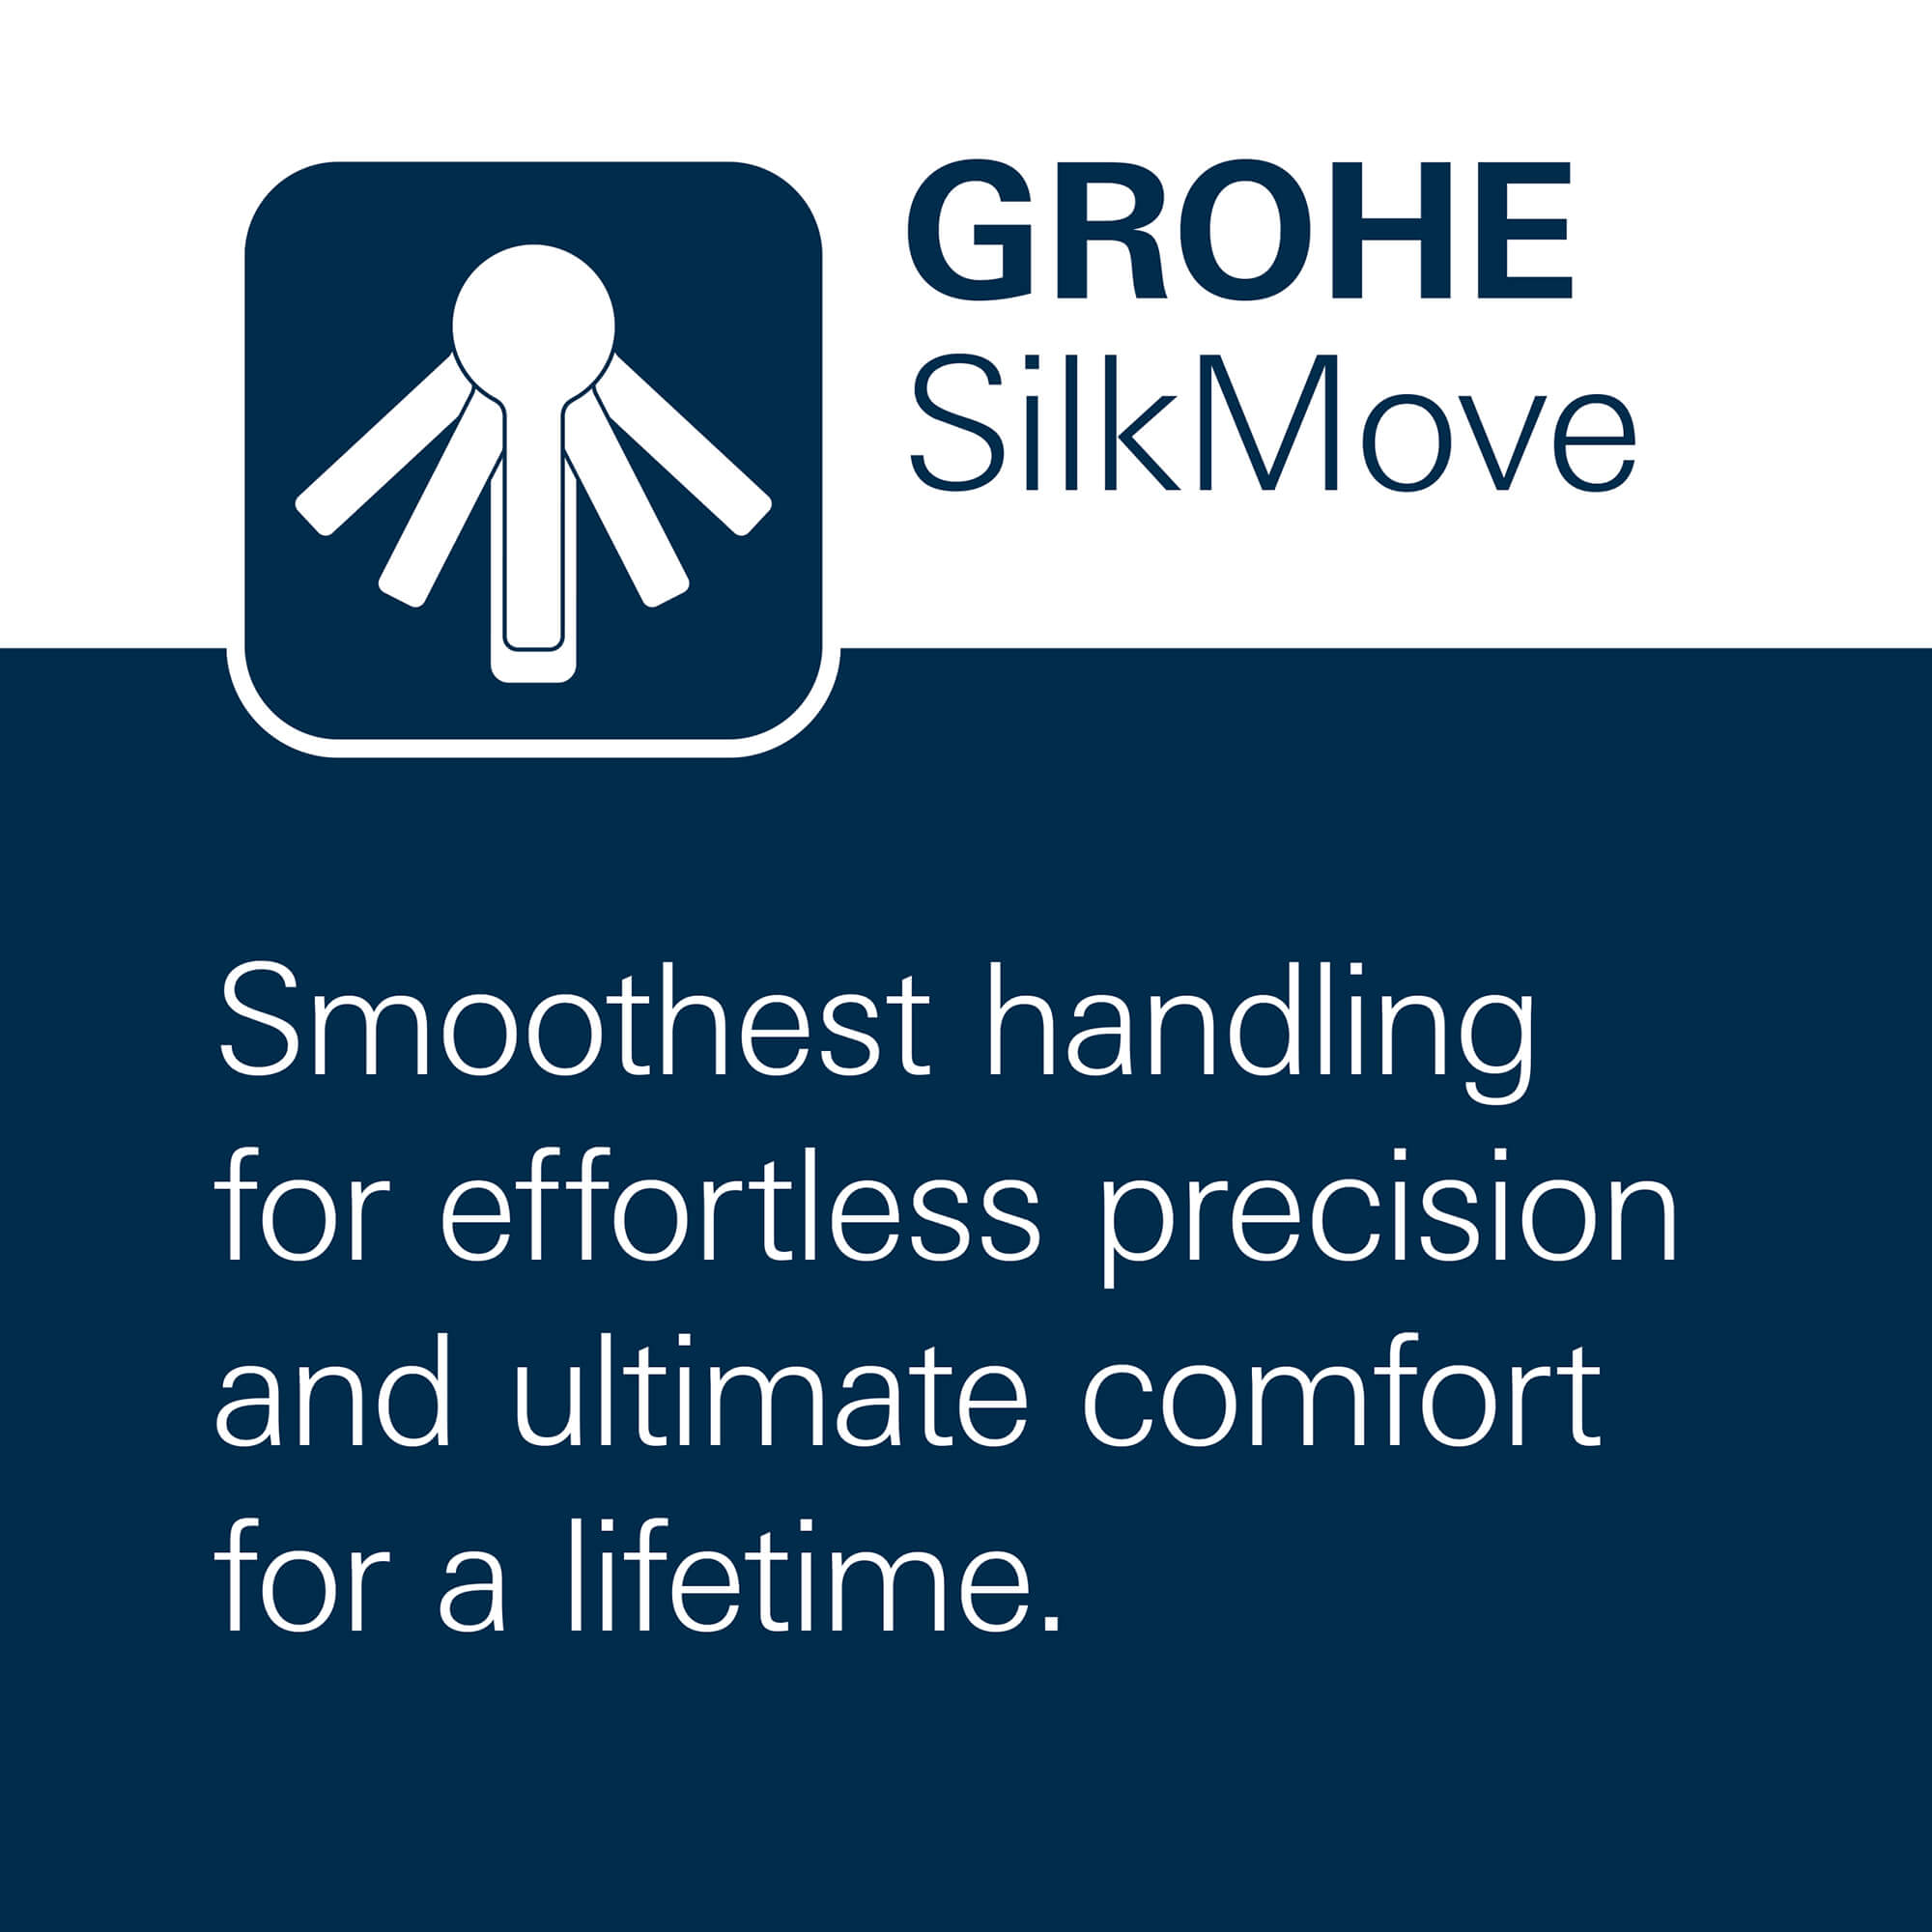 GROHE Silkmove - Smoothest handling for effortless precision and ultimate comfort for a lifetime.